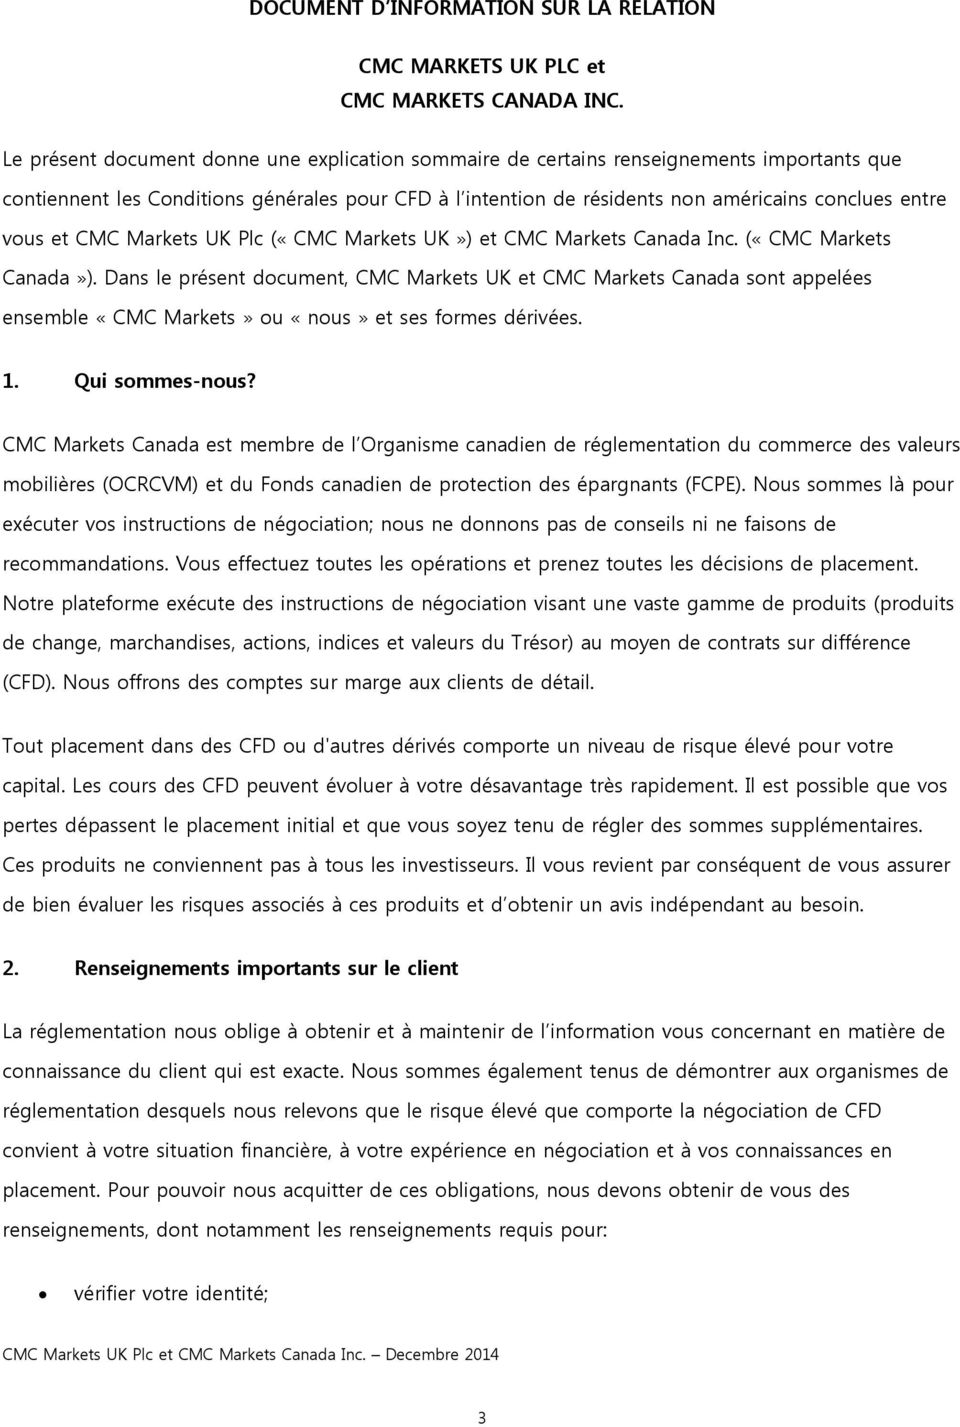 vous et CMC Markets UK Plc («CMC Markets UK») et CMC Markets Canada Inc. («CMC Markets Canada»).